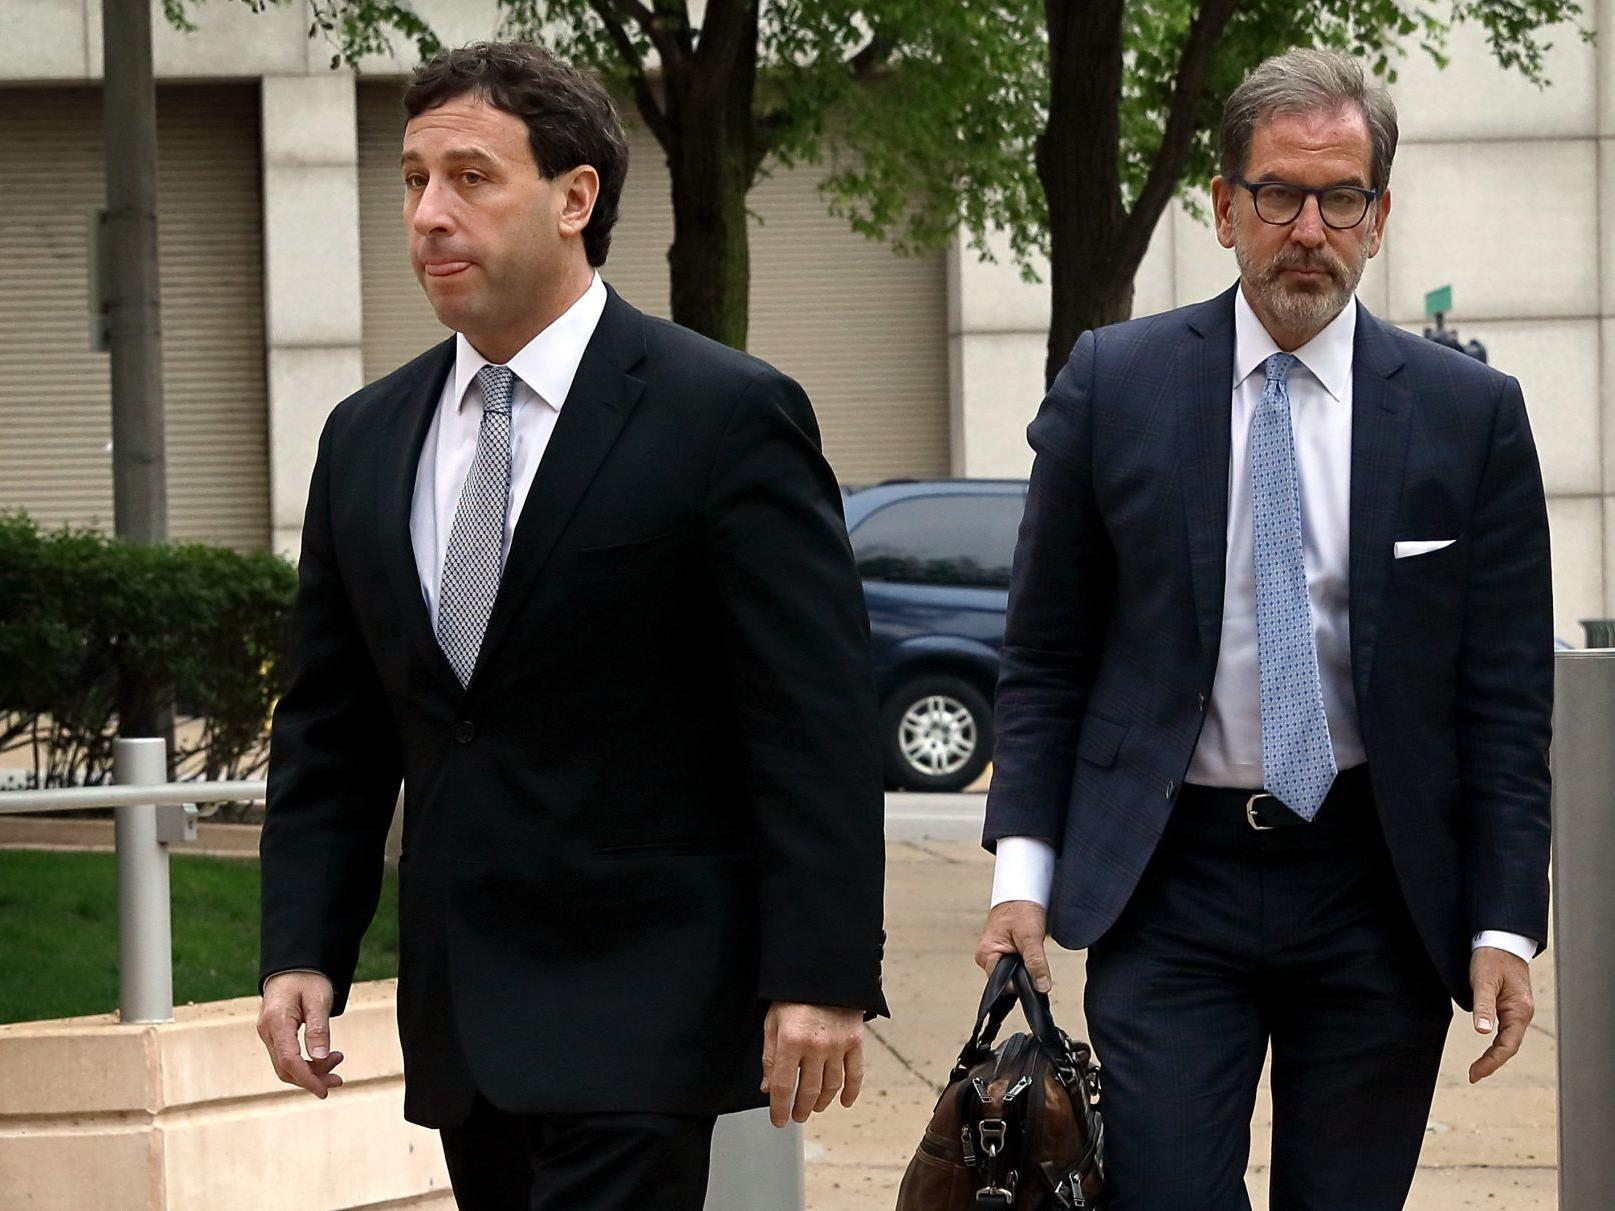 Former St. Louis County Executive Steve Stenger to plead guilty on Friday,  feds say | Politics | stltoday.com